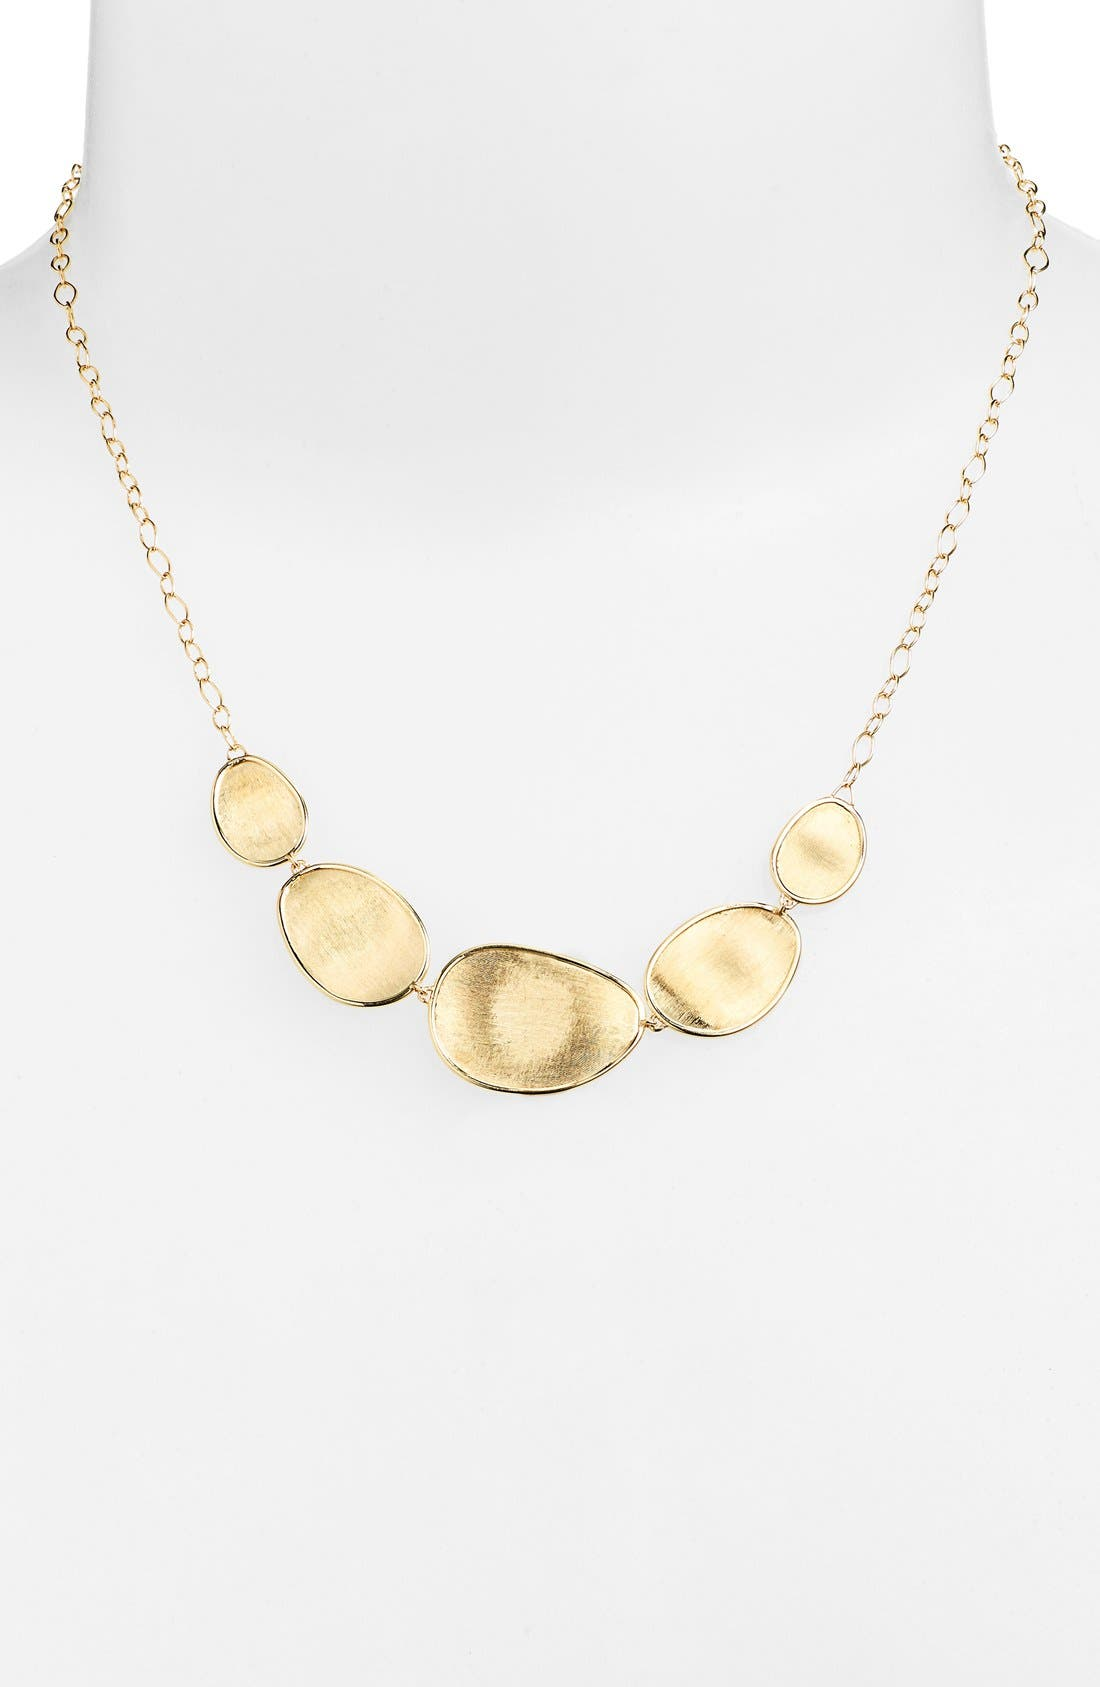 Main Image - Marco Bicego 'Lunaria' Frontal Necklace